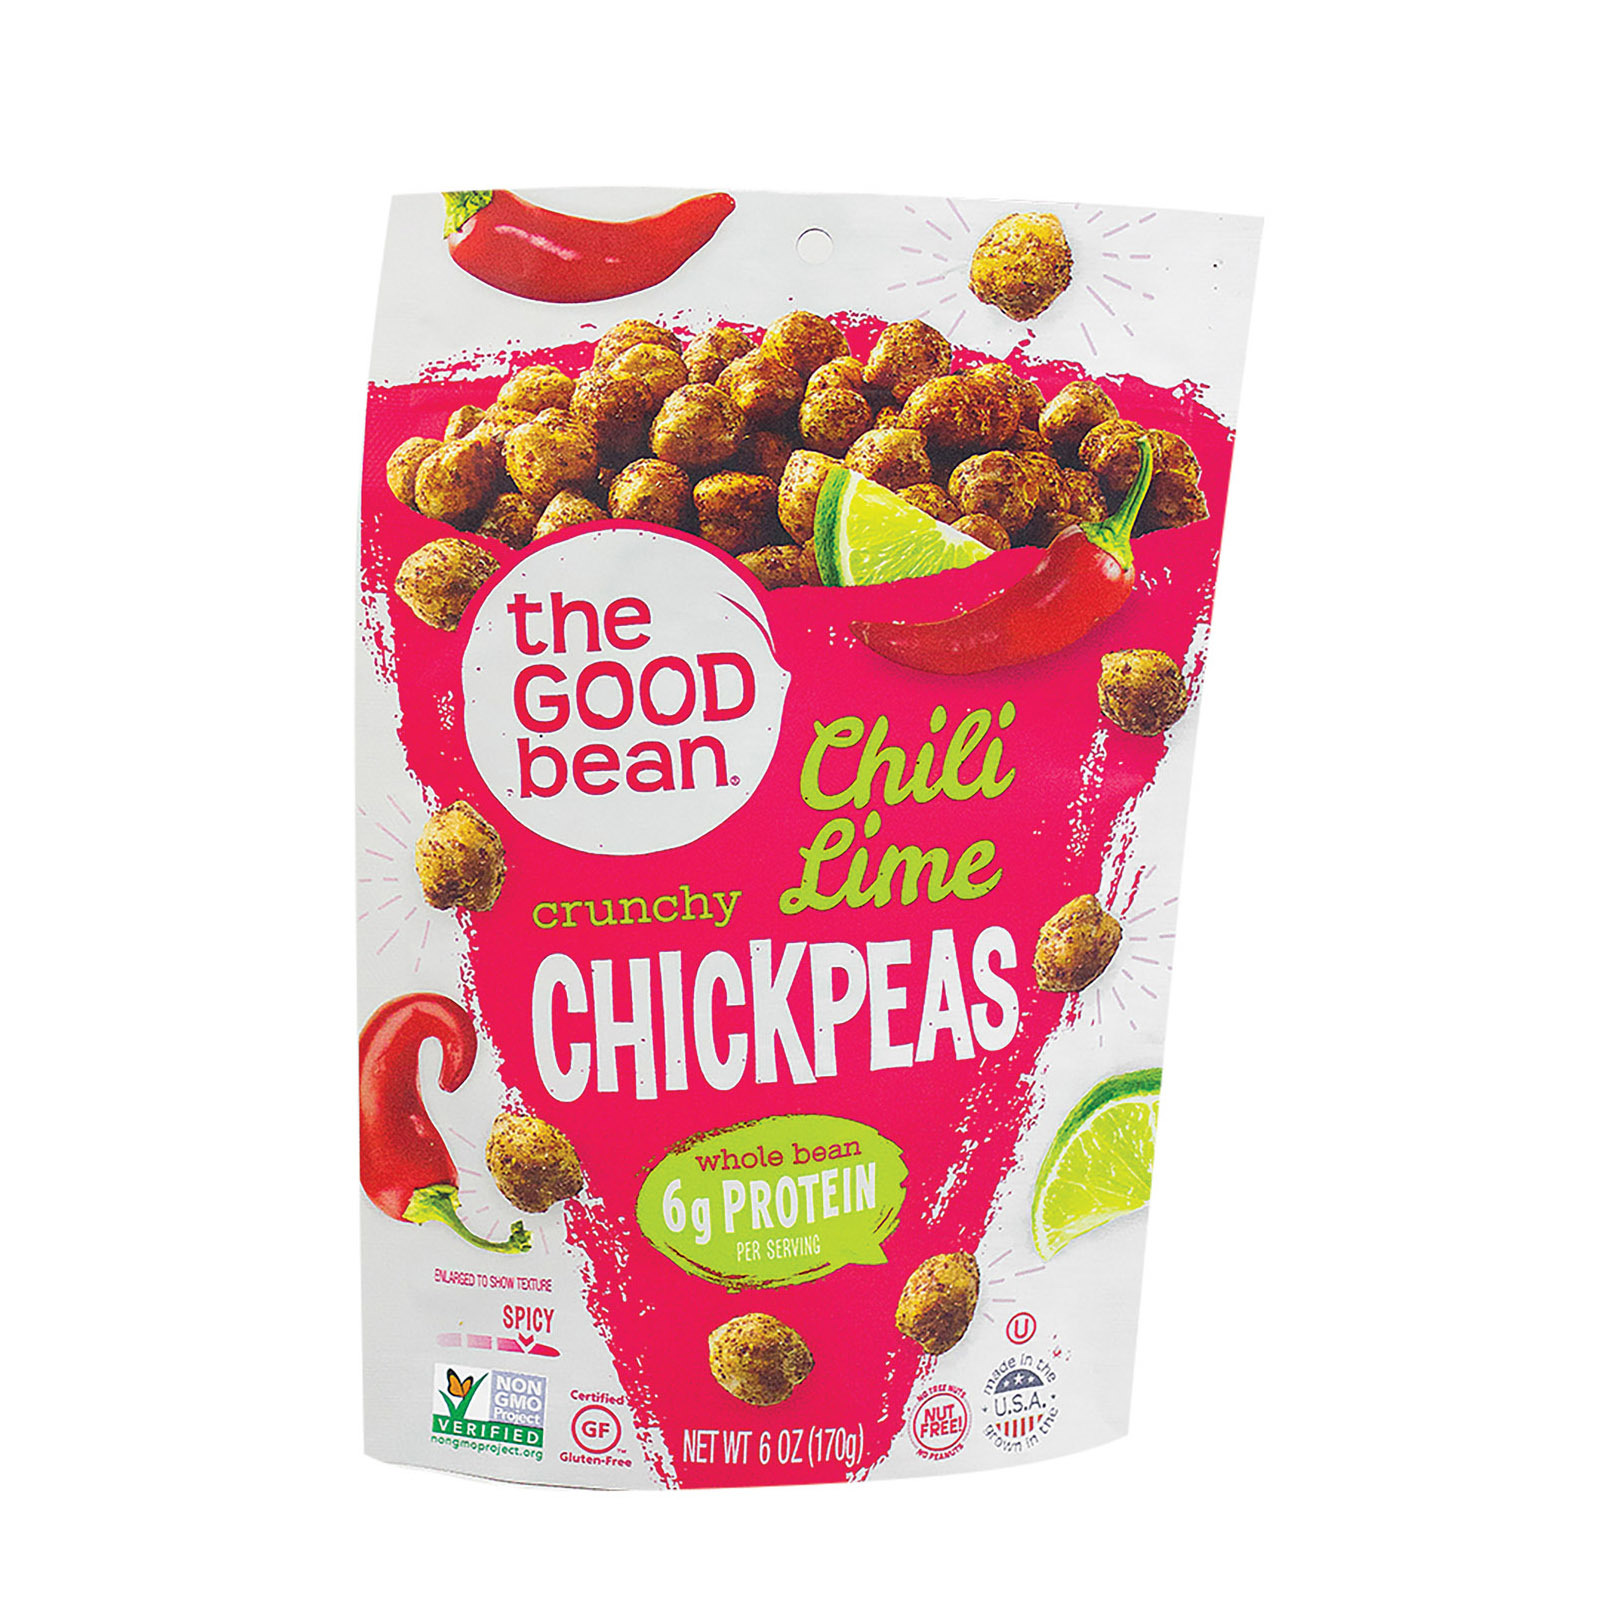 The Good Bean Crispy Crunchy Chickpea Snacks - Smoky Chili and Lime - Case of 6 - 6 oz.